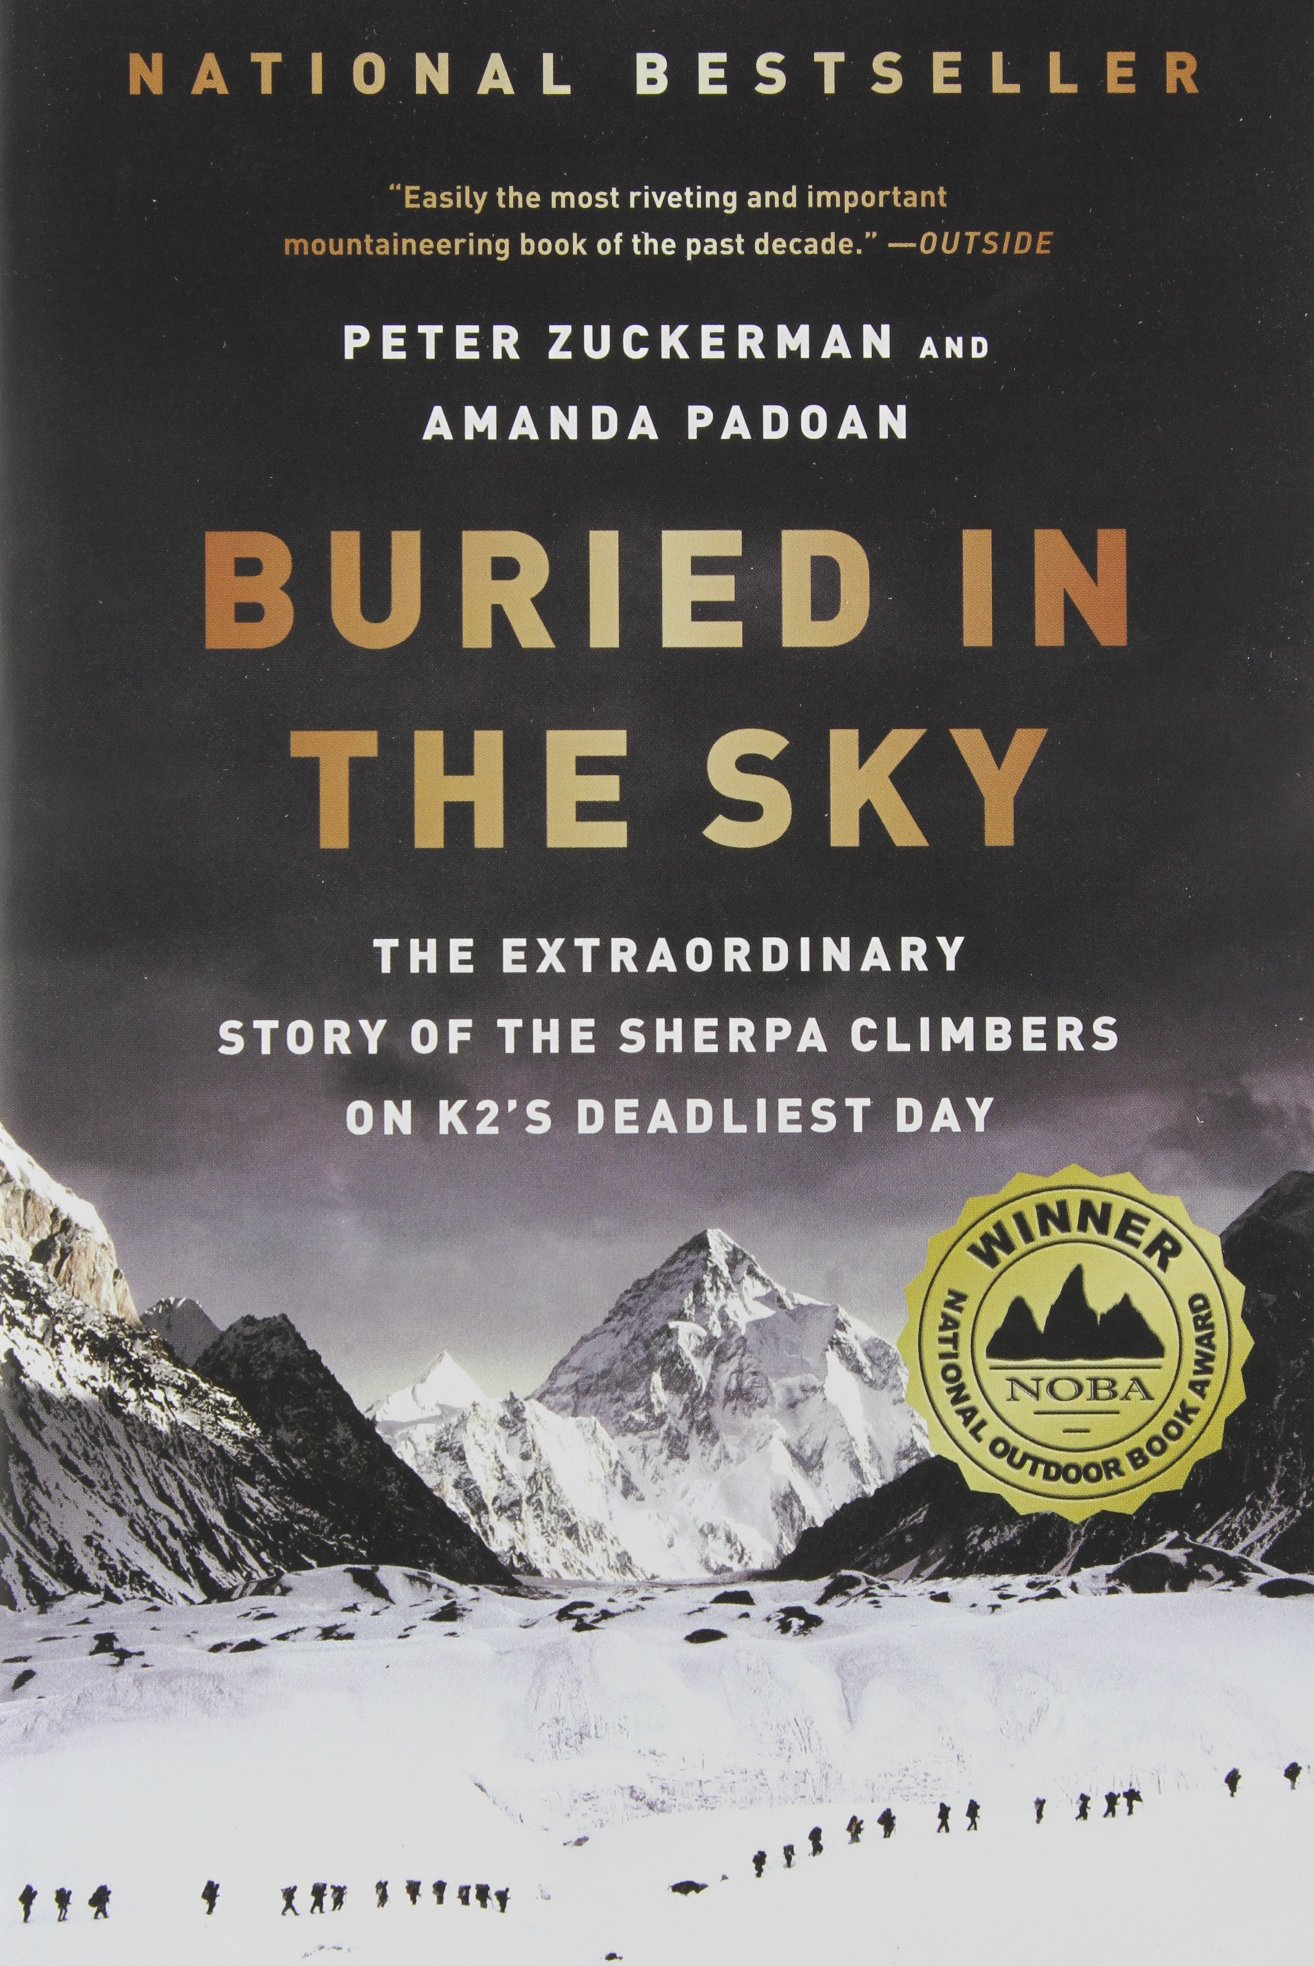 Buried in the Sky: The Extraordinary Story of the Sherpa Climbers on K2's Deadliest Day Book Cover